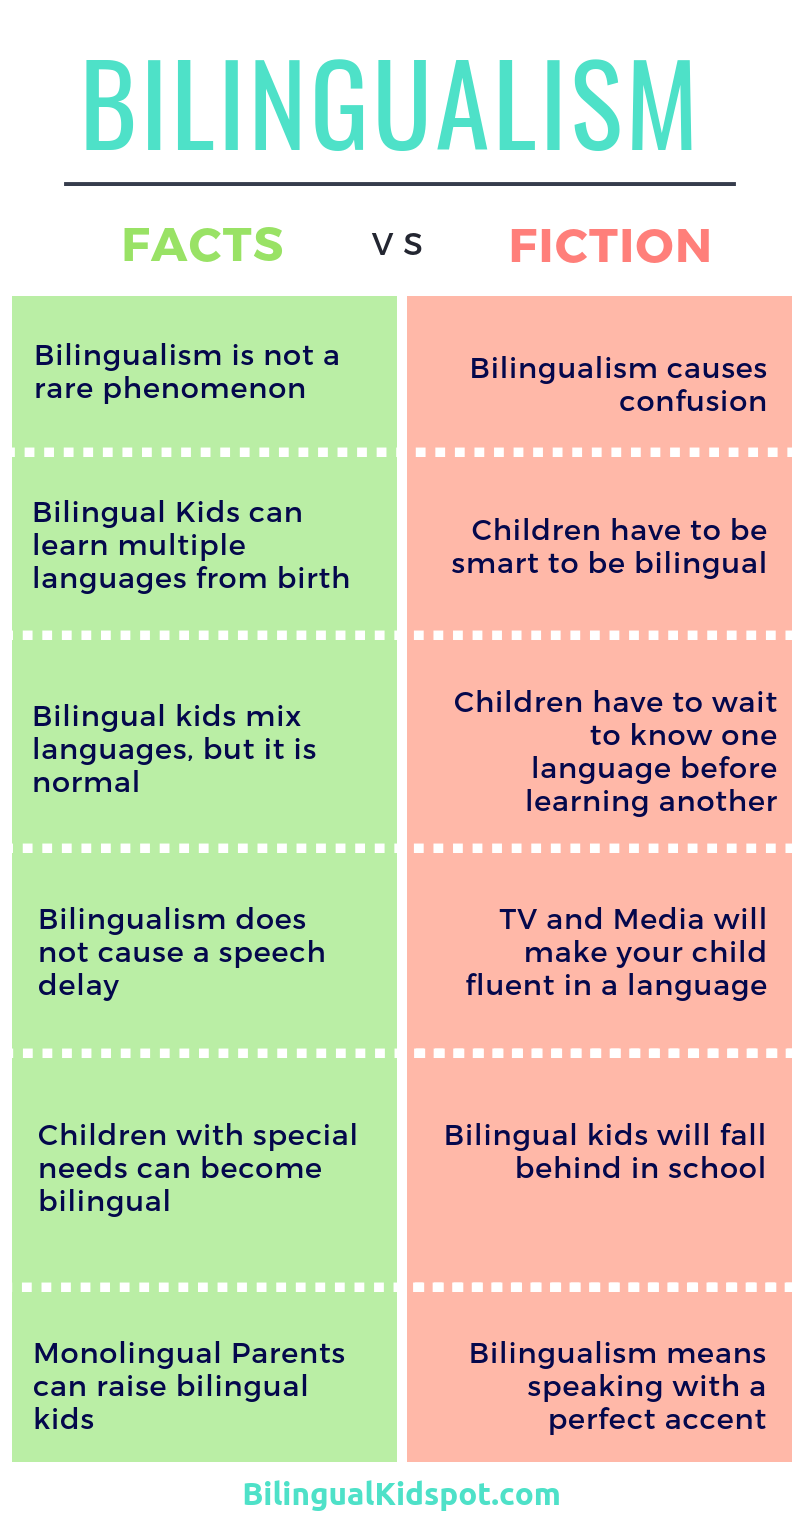 Bilingualism Facts and Fiction Infographic